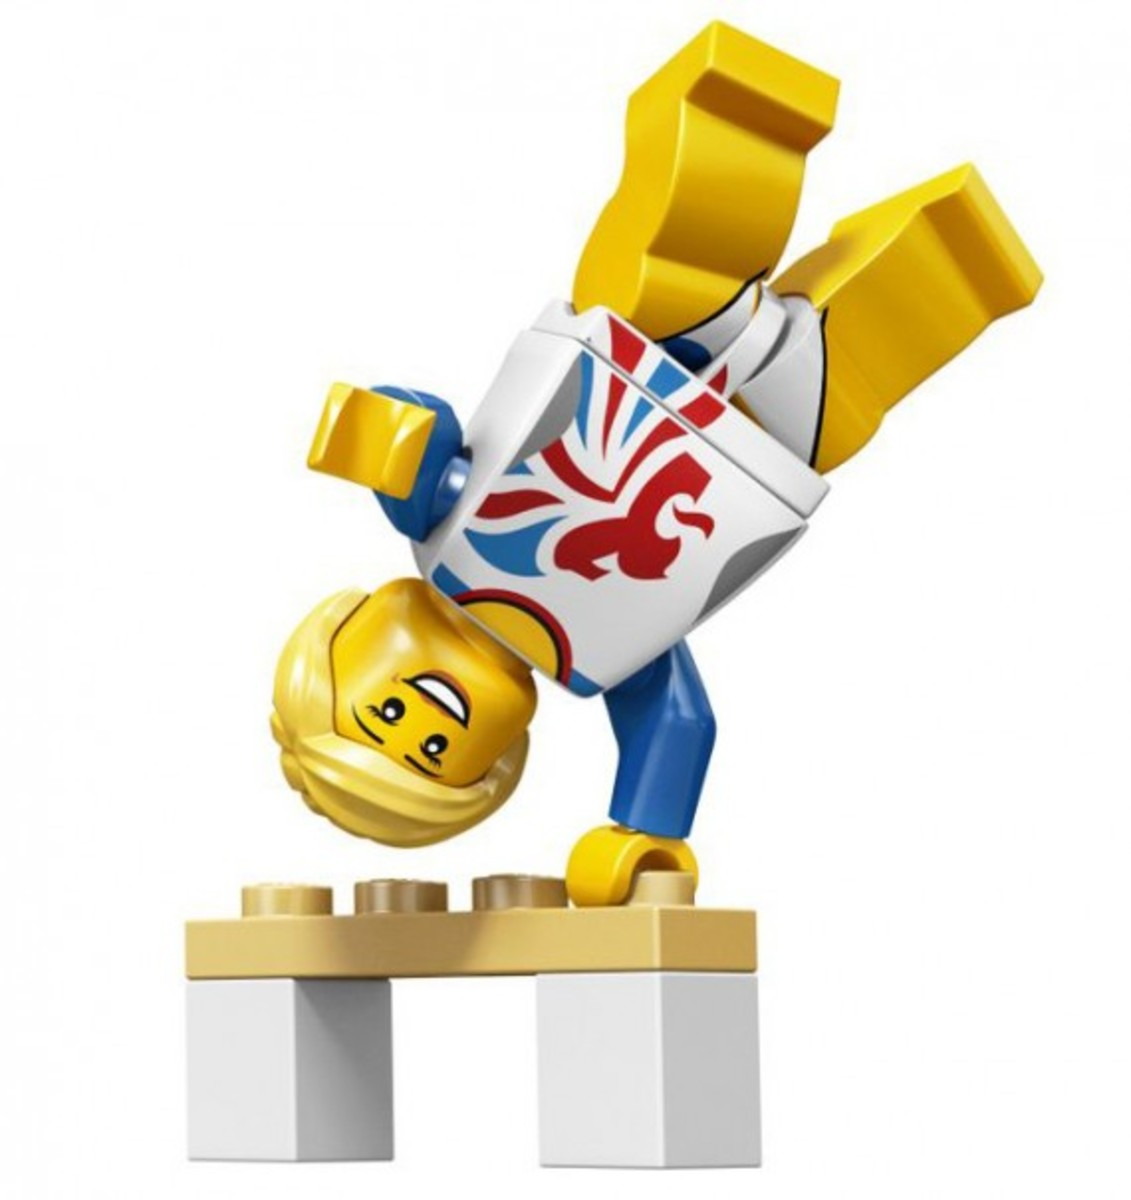 lego-team-great-britain-minifigures-flexible-gymnast